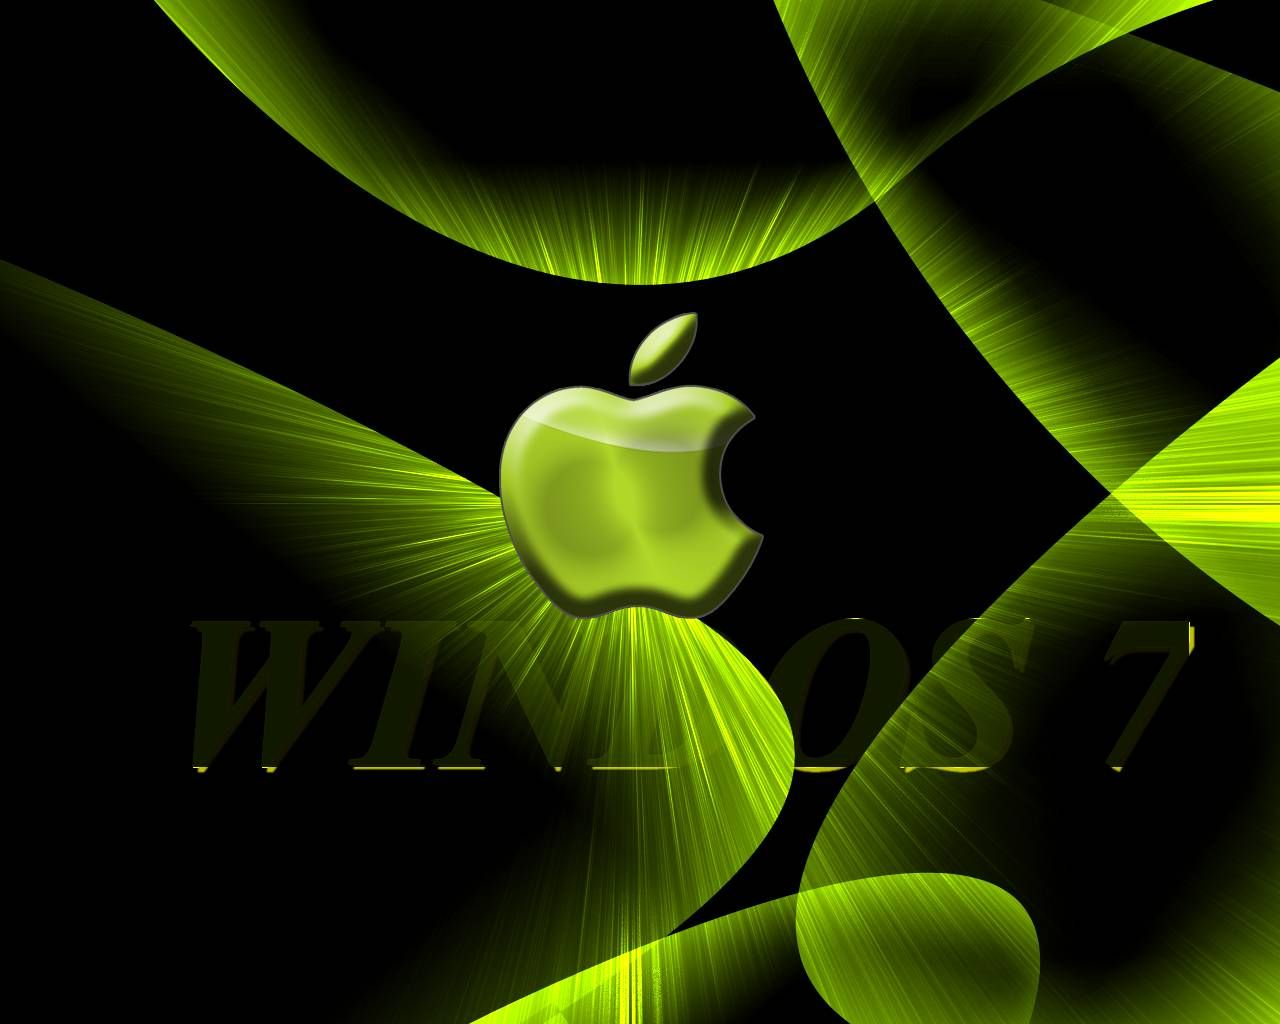 Apple Wallpaper Hd Free Download